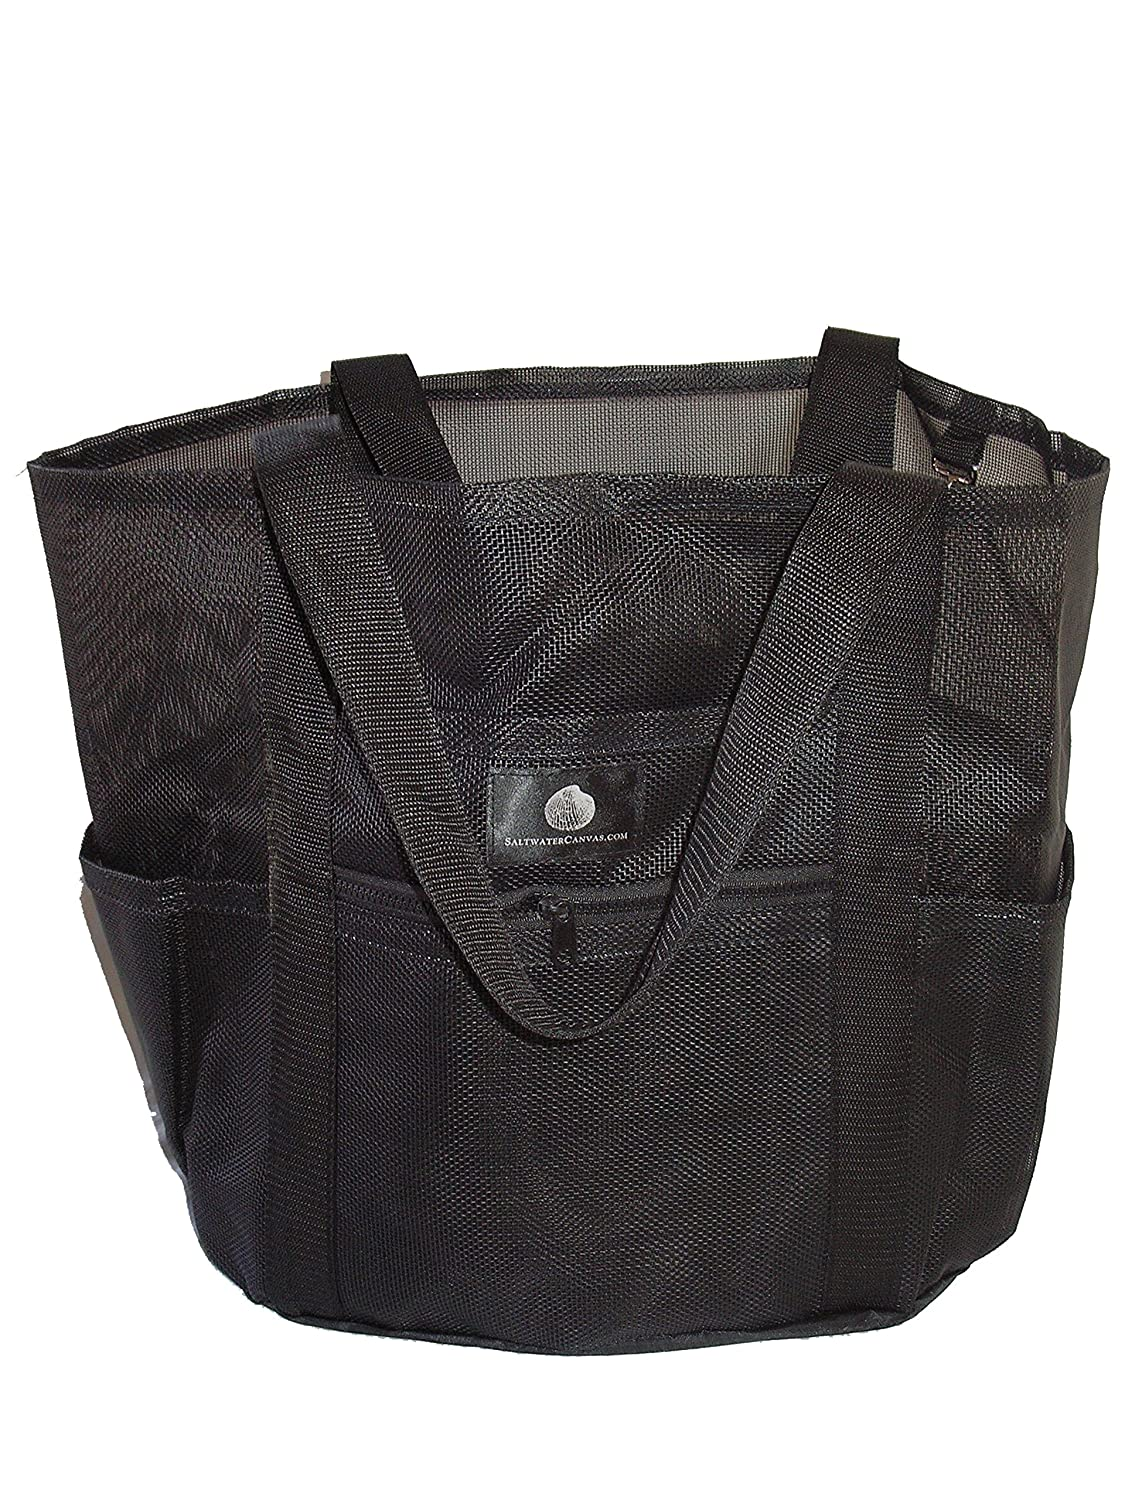 Saltwater Canvas Family Mesh Whale Bag, Sand Waterproof base, 9 pockets, Black